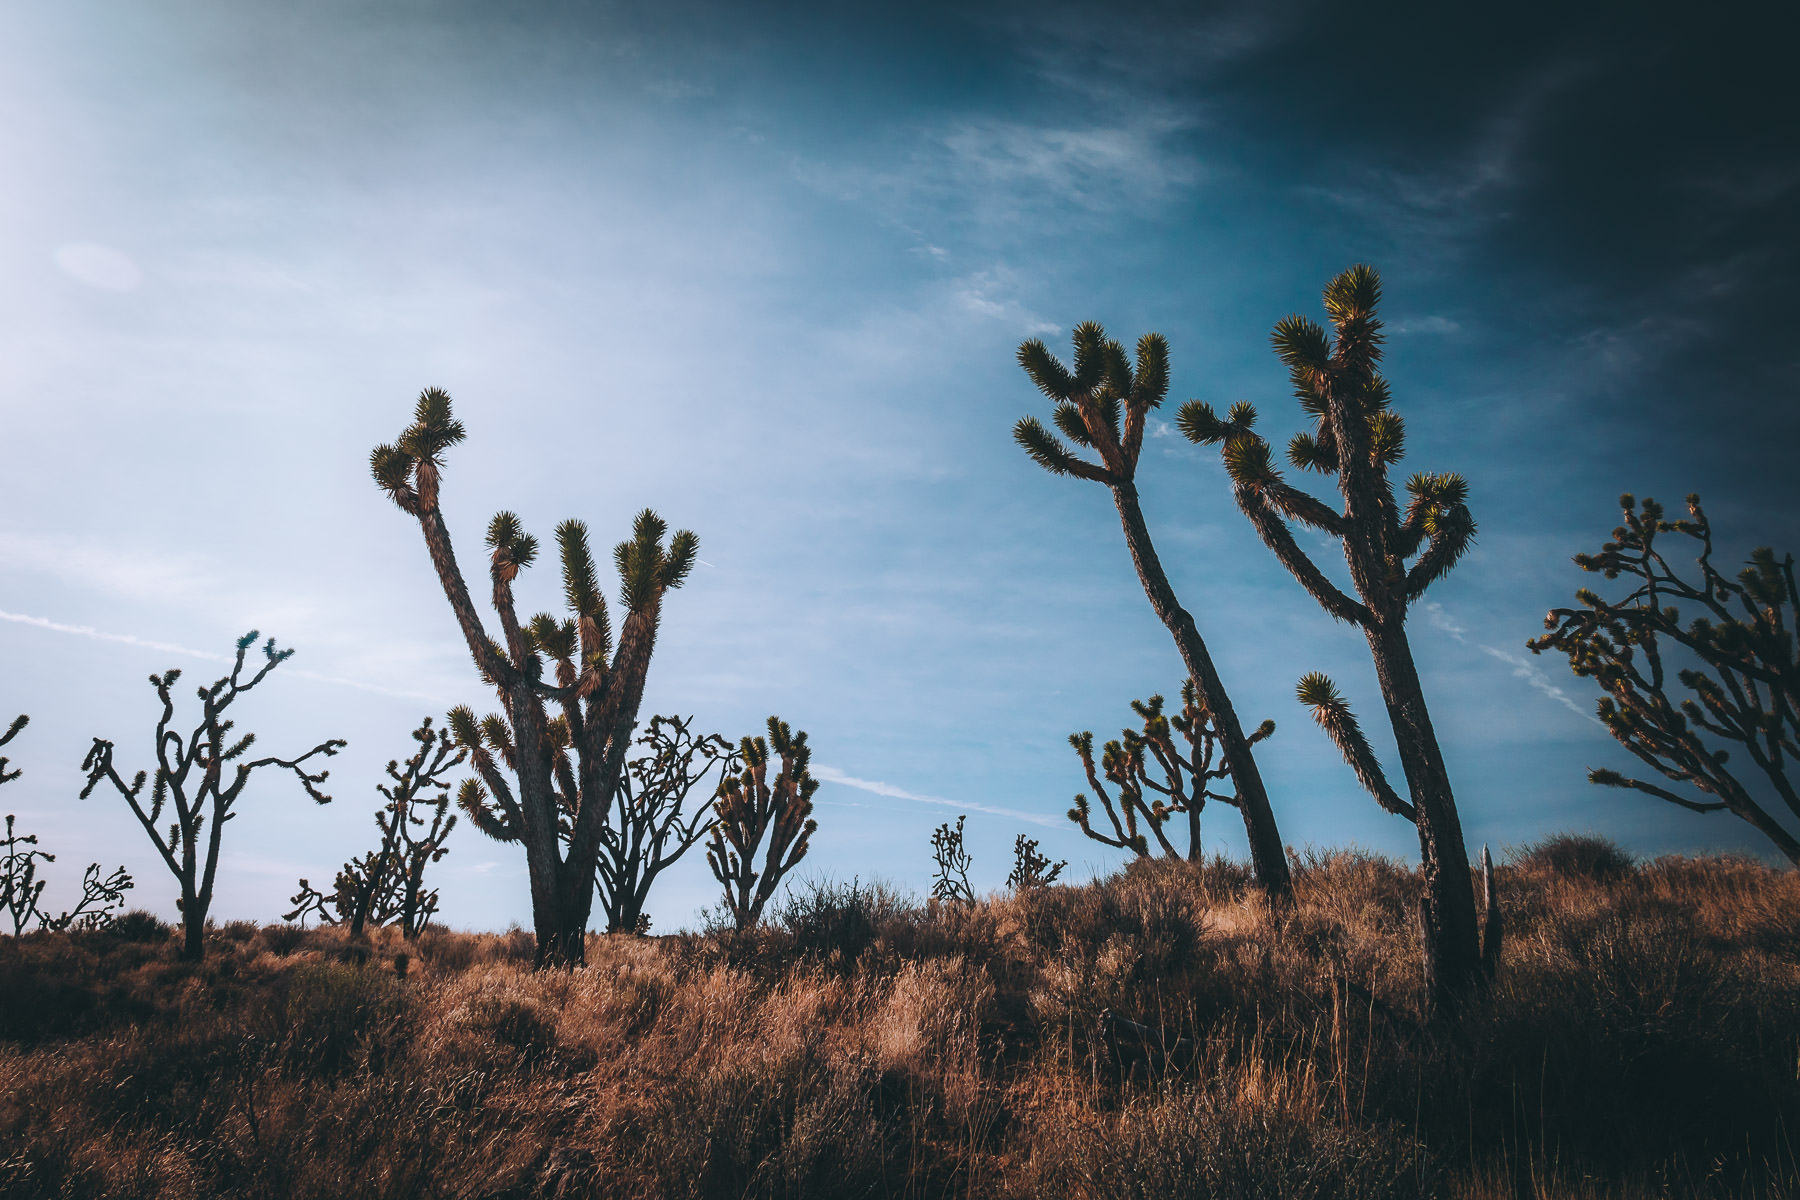 Joshua trees grow in the arid landscape of California's Mojave National Preserve.